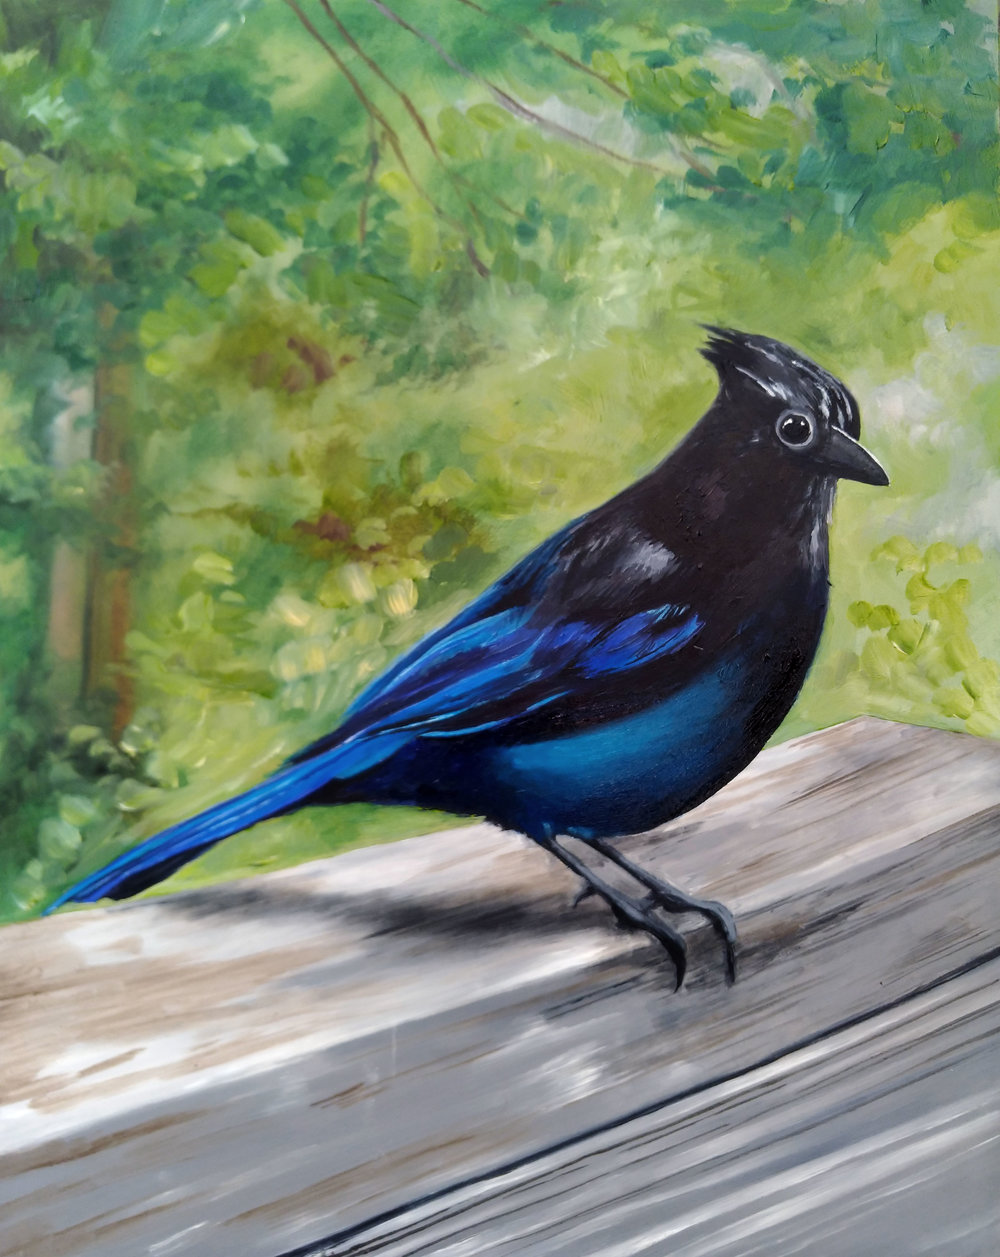 Stellar's Jay Commission from 2018 - 8 x 10 Oil on Panel